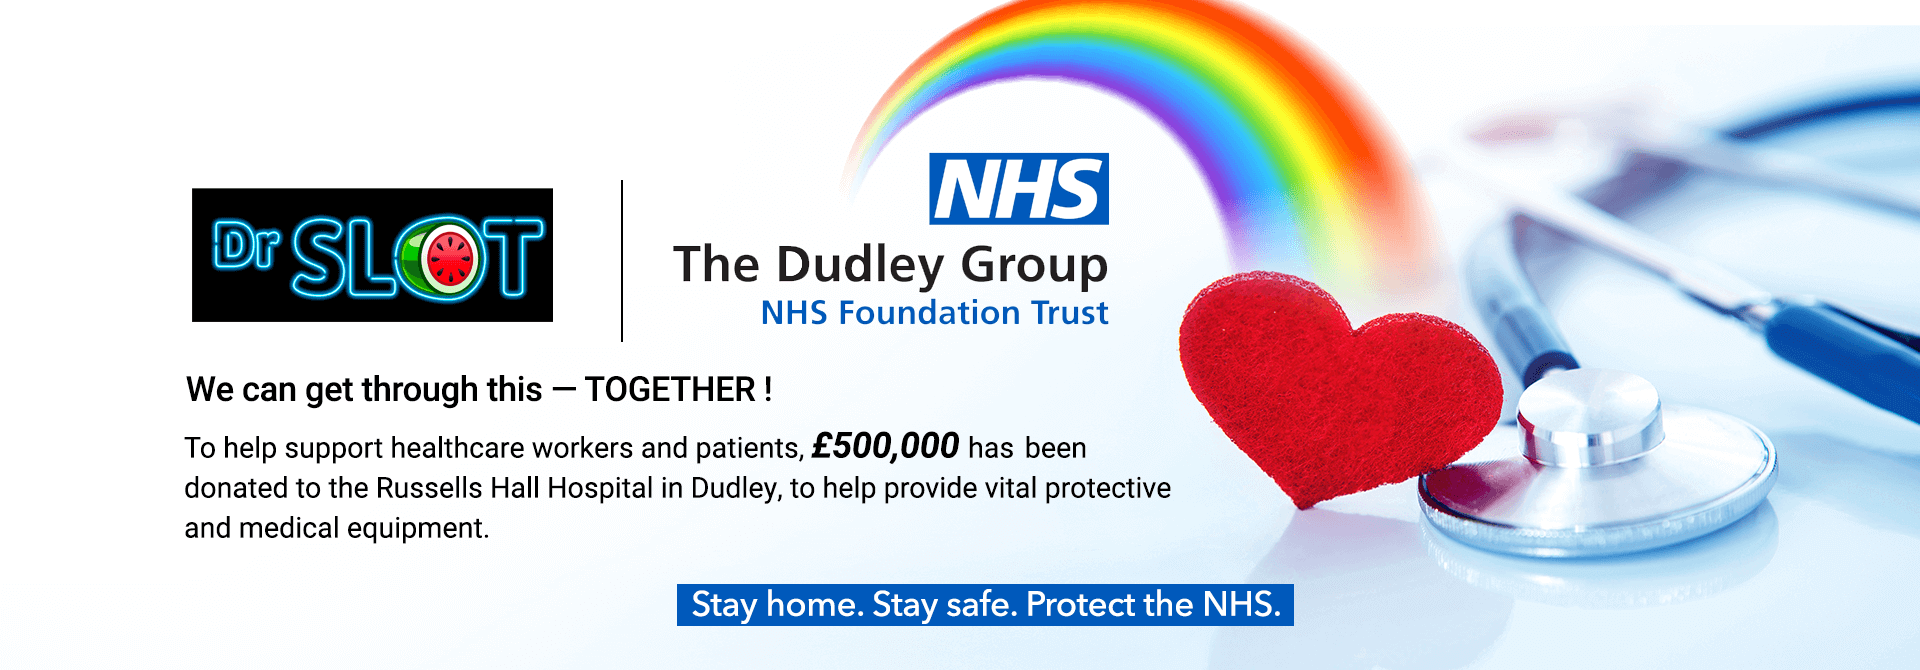 £500,000 donated to the Dudley Group NHS Foundation Trust, to support staff and caregivers on the frontline.